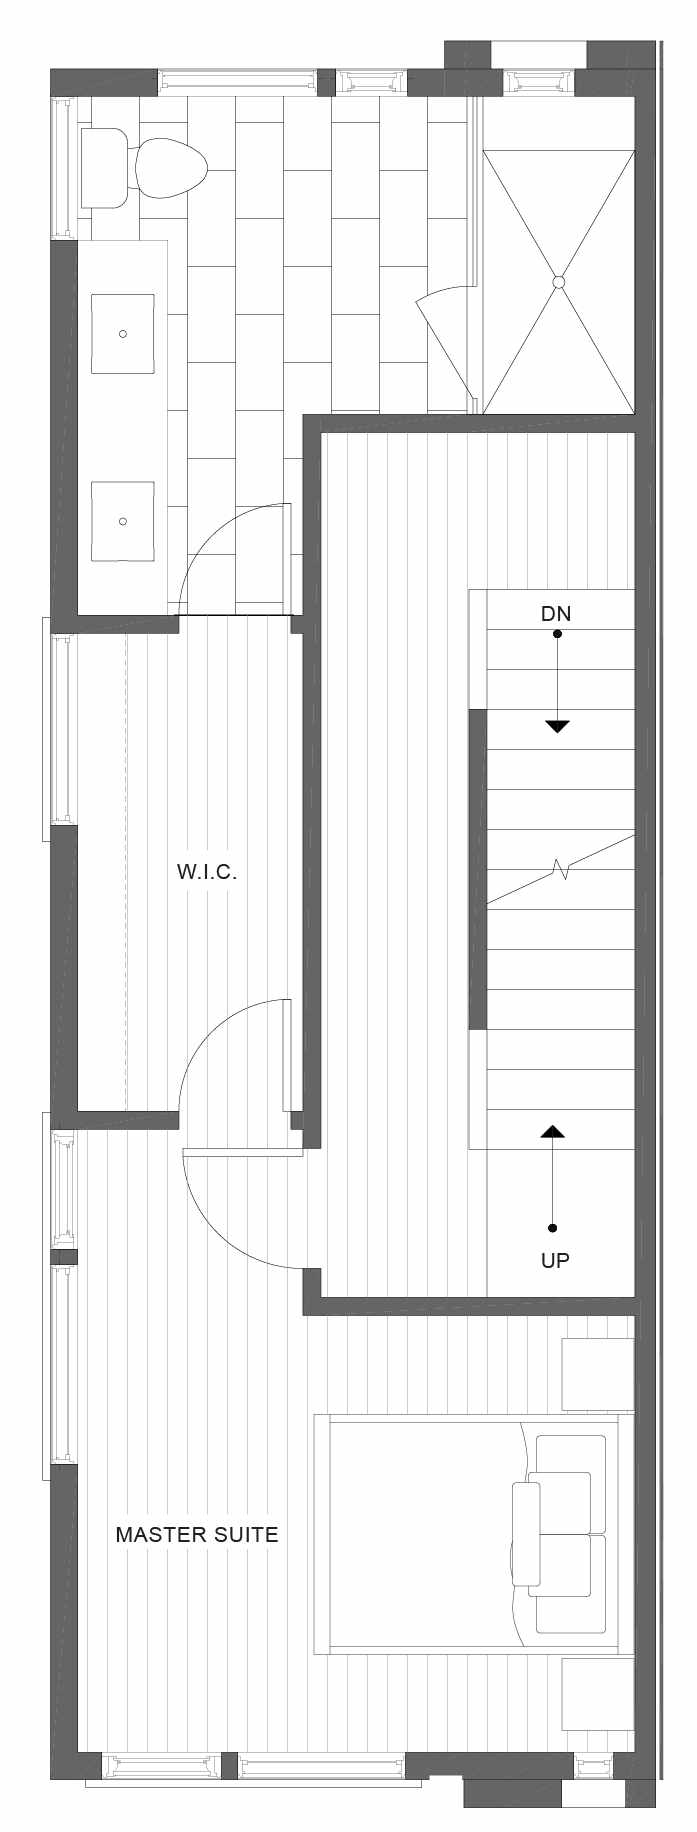 Third Floor Plan of 1320 E Spring St of the Corazon II Townhomes